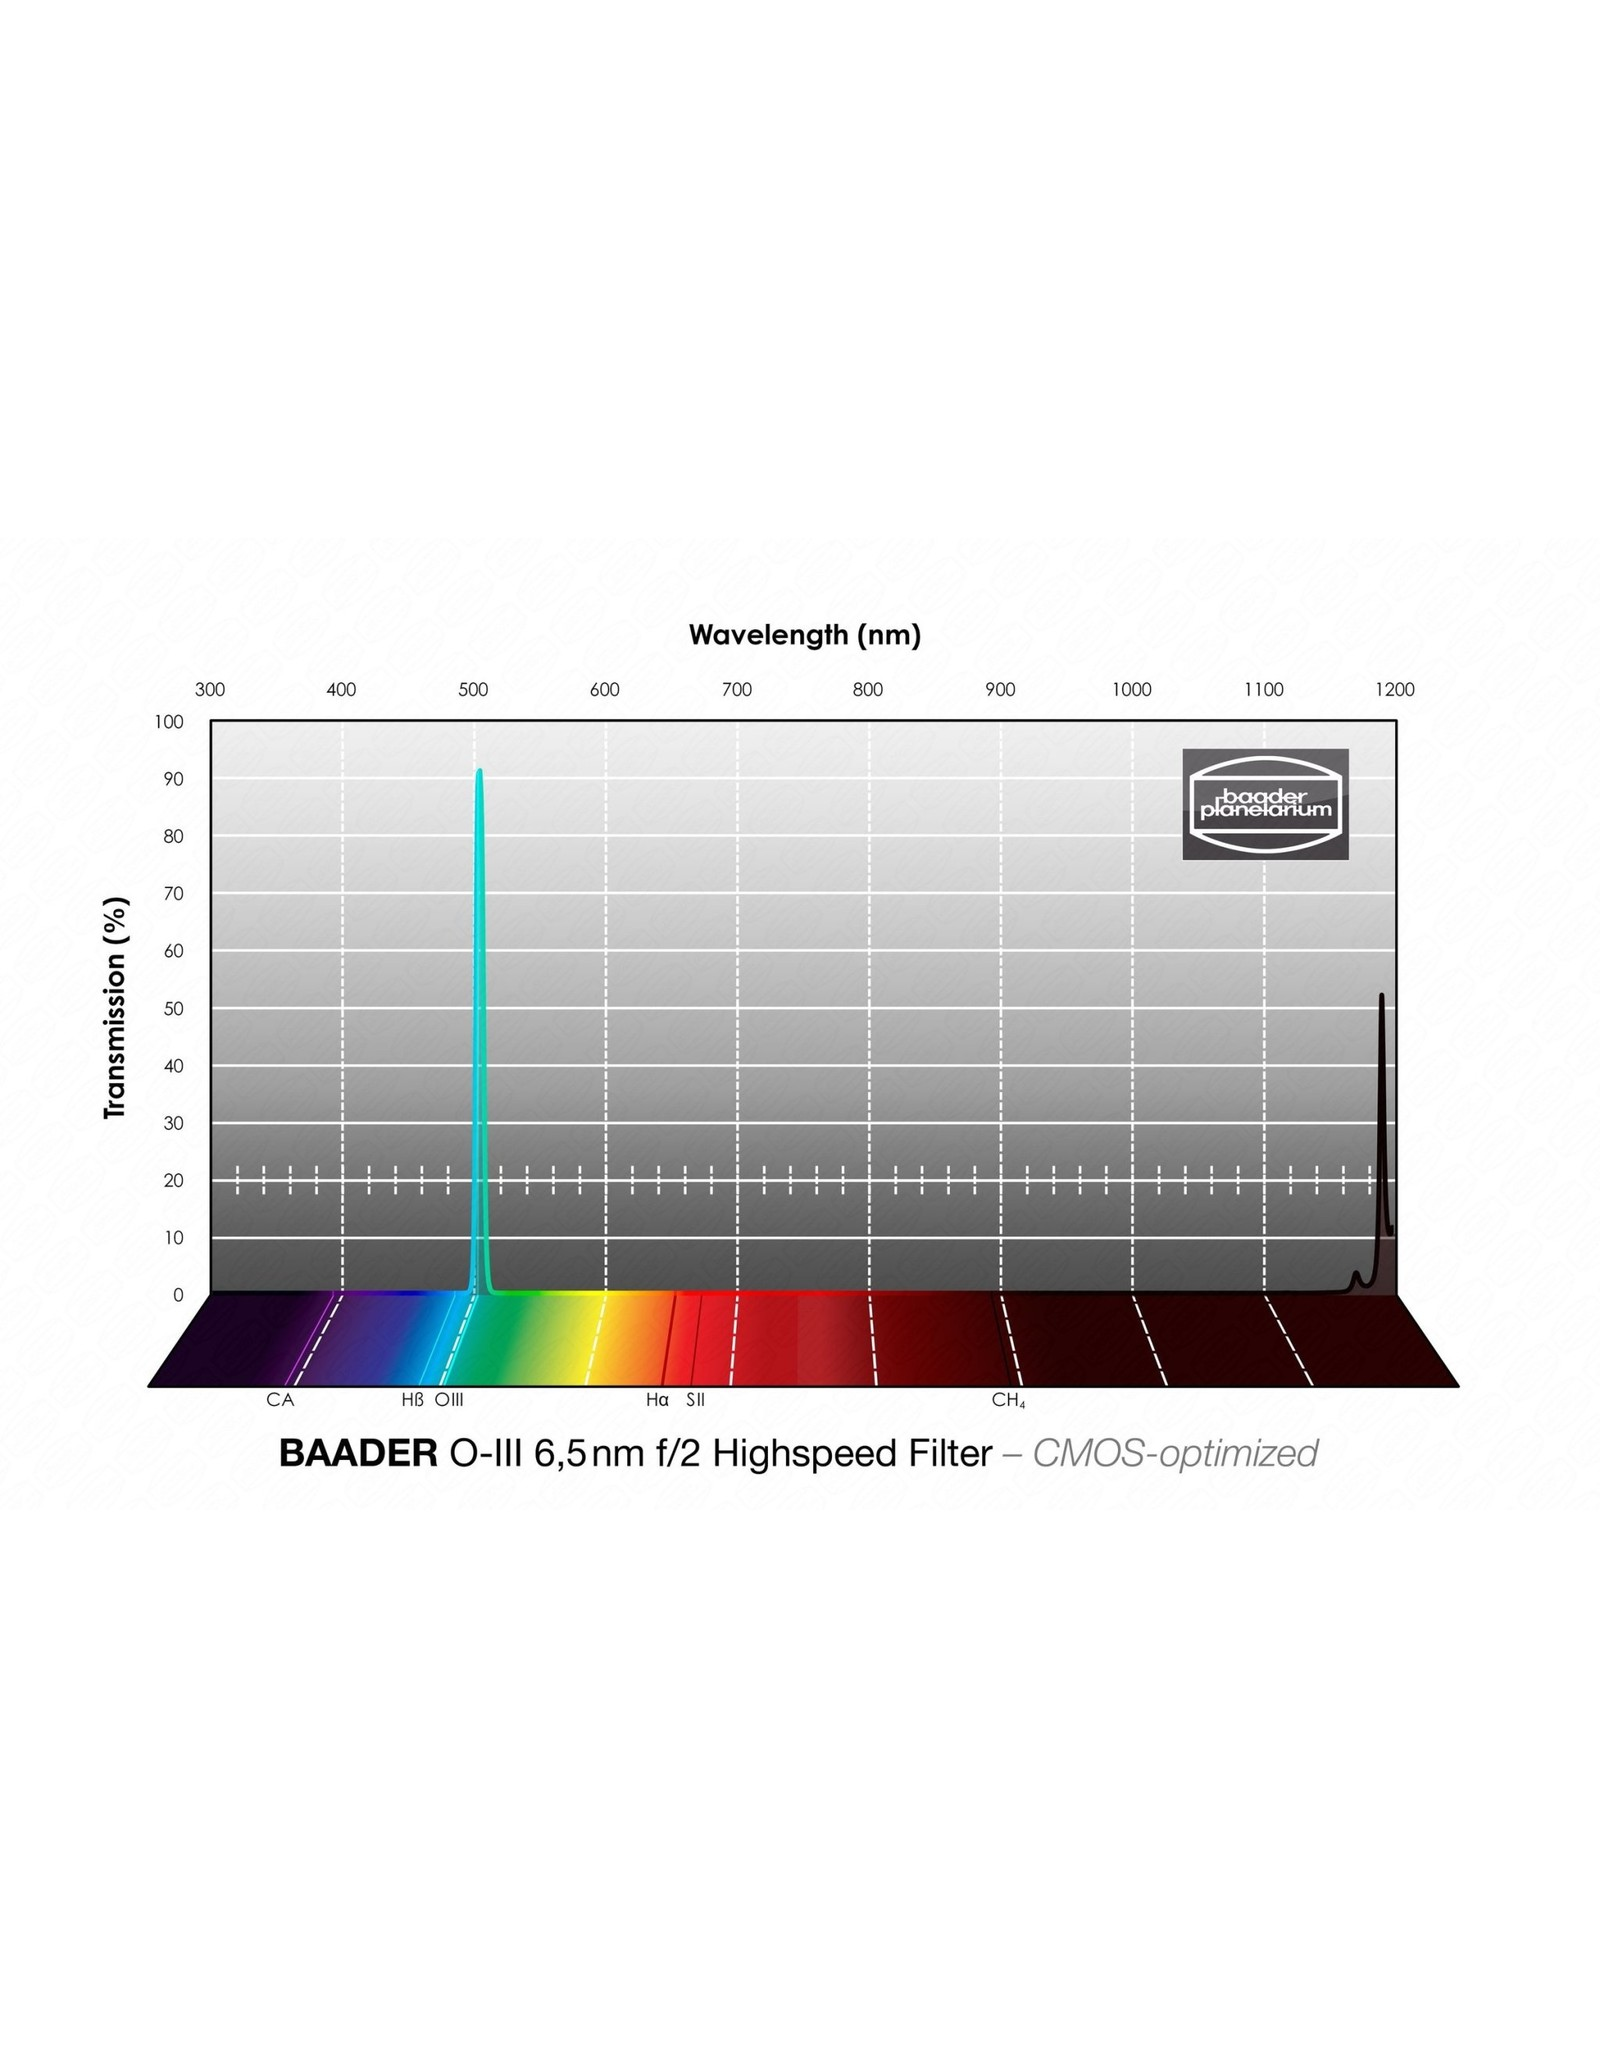 Baader Planetarium Baader 6.5nm f/2 Highspeed Oxygen-III Filters – CMOS-optimized (Specify Size)